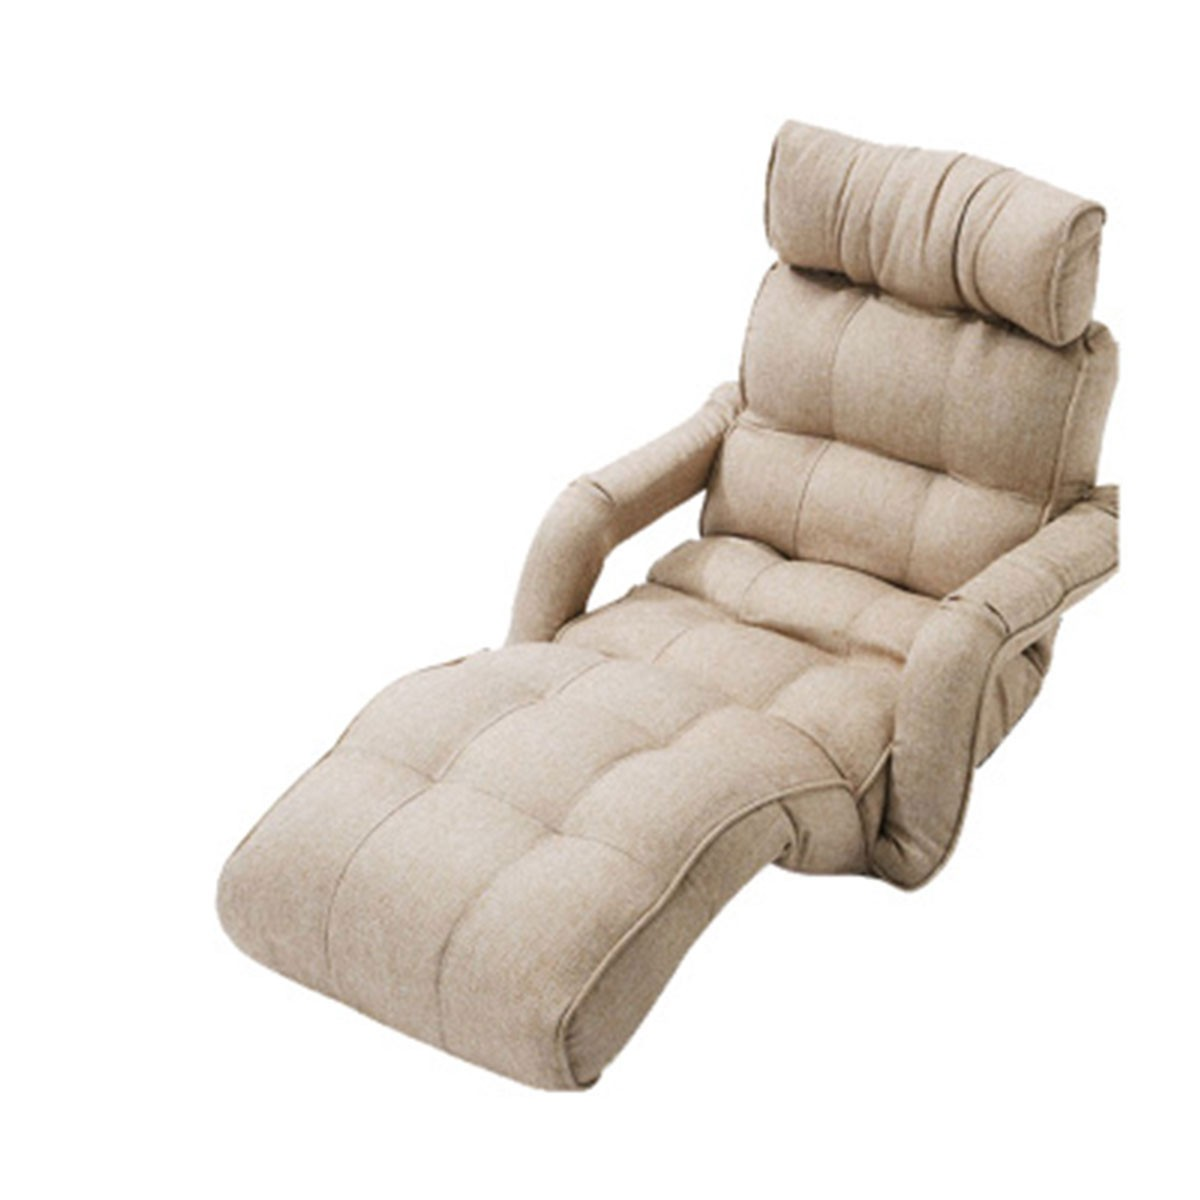 armchair foam sleeper sofa oversized chair sleeper sofa bed